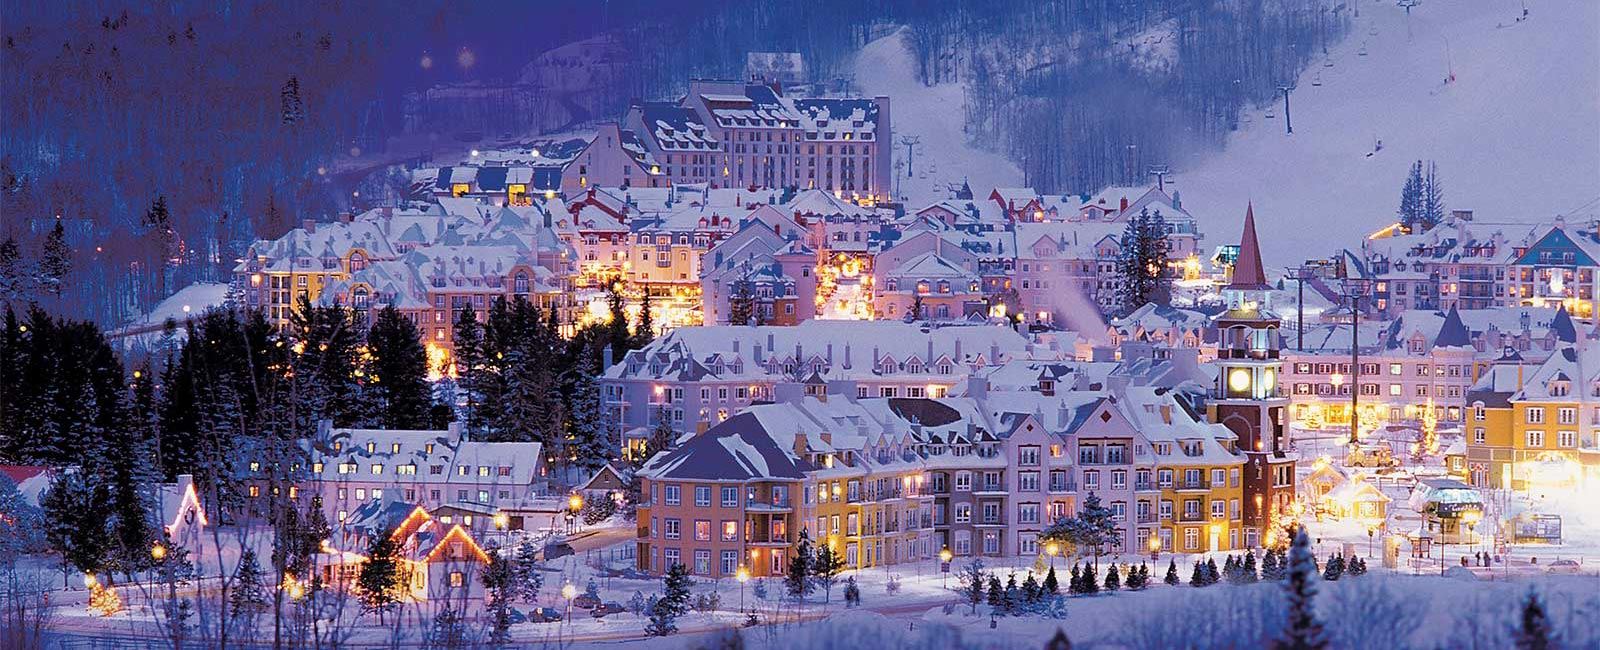 Tremblant village